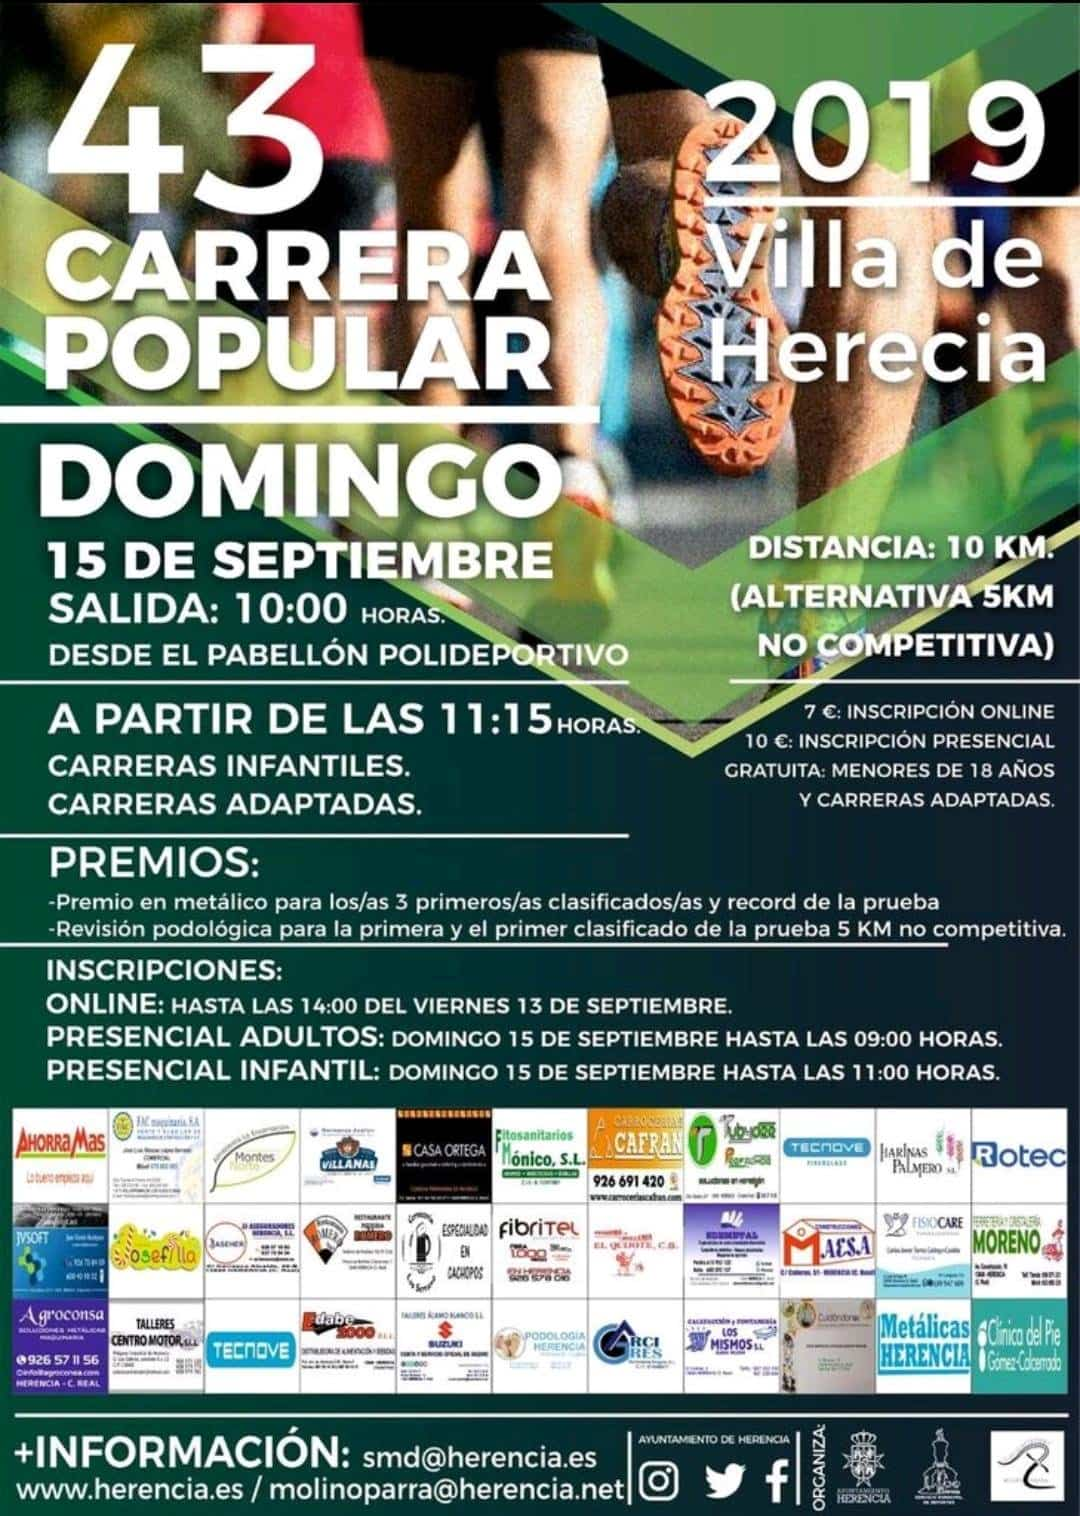 "43 carrera popular herencia 2019 - Presentada la 43 Carrera Popular ""Villa de Herencia"""